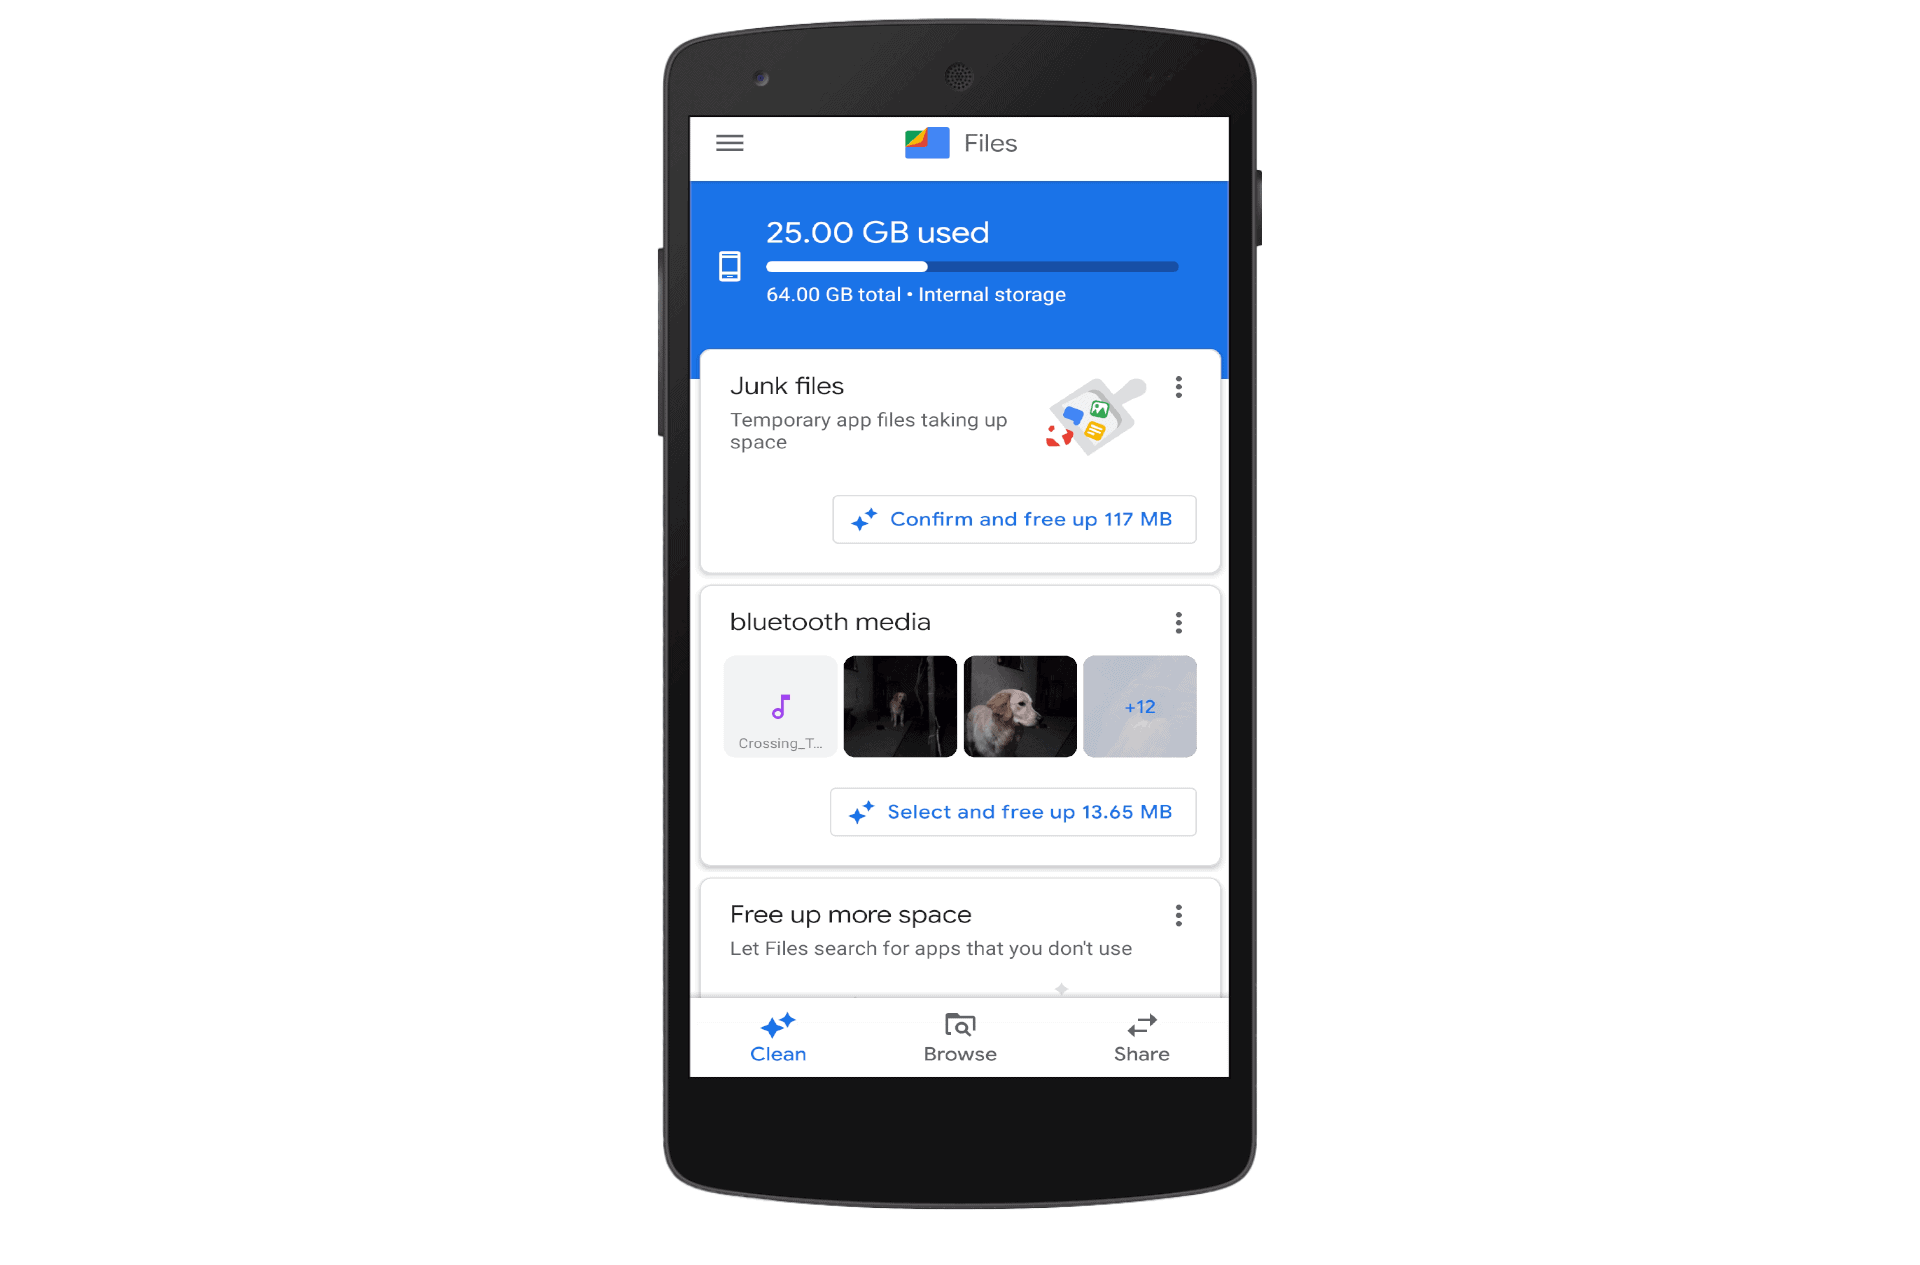 Files by Google Clean